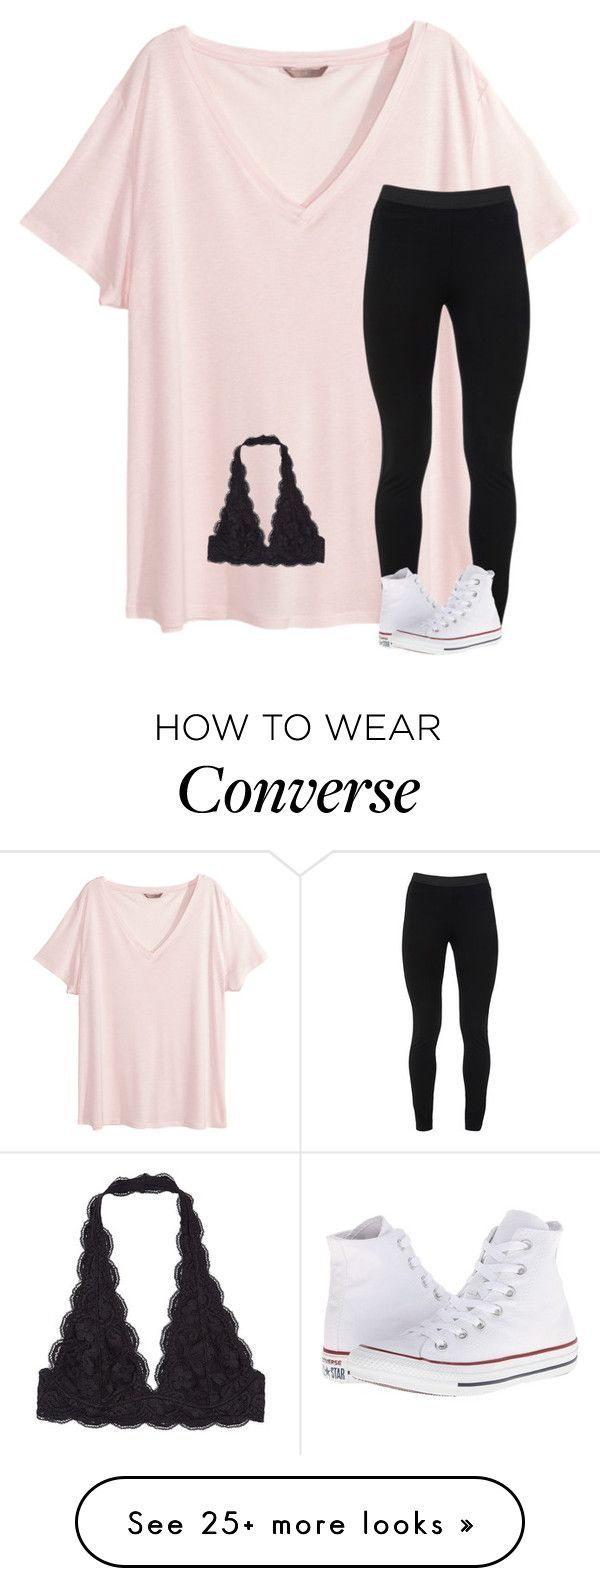 """HALPY BIRTHDAY LILLY "" by katherinecat14 on Polyvore featuring H&M, Peace of Cloth and Converse"